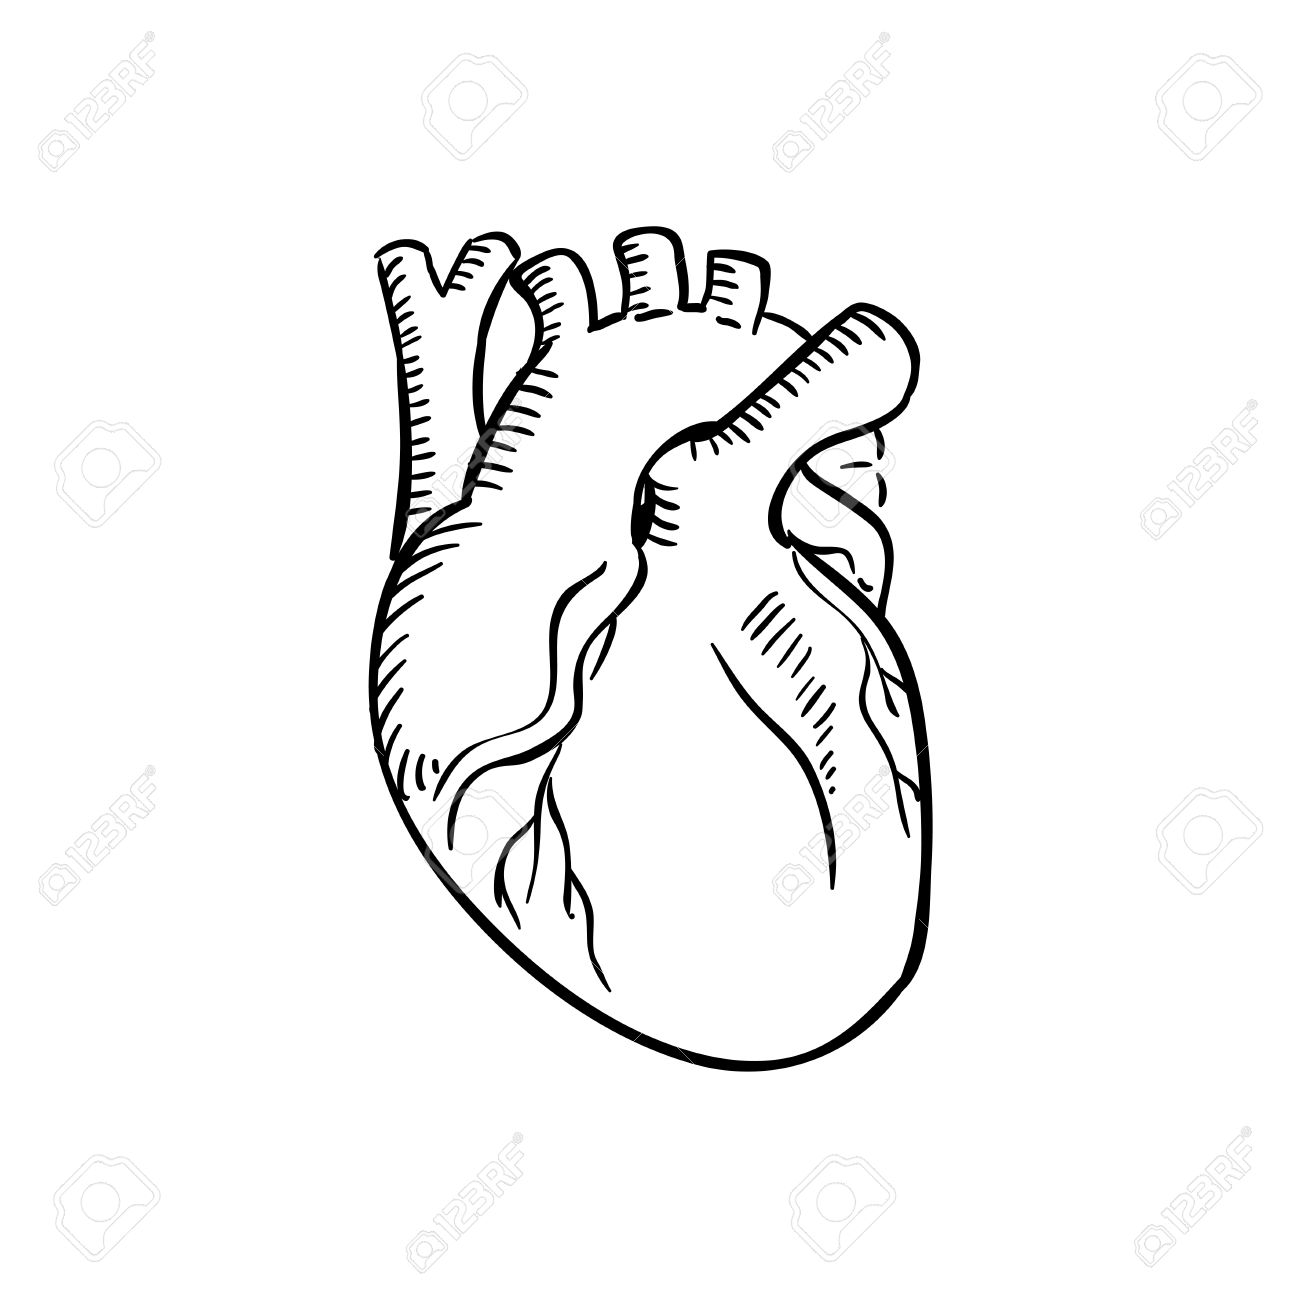 Human heart outline sketch. Isolated anatomical detailed organ...